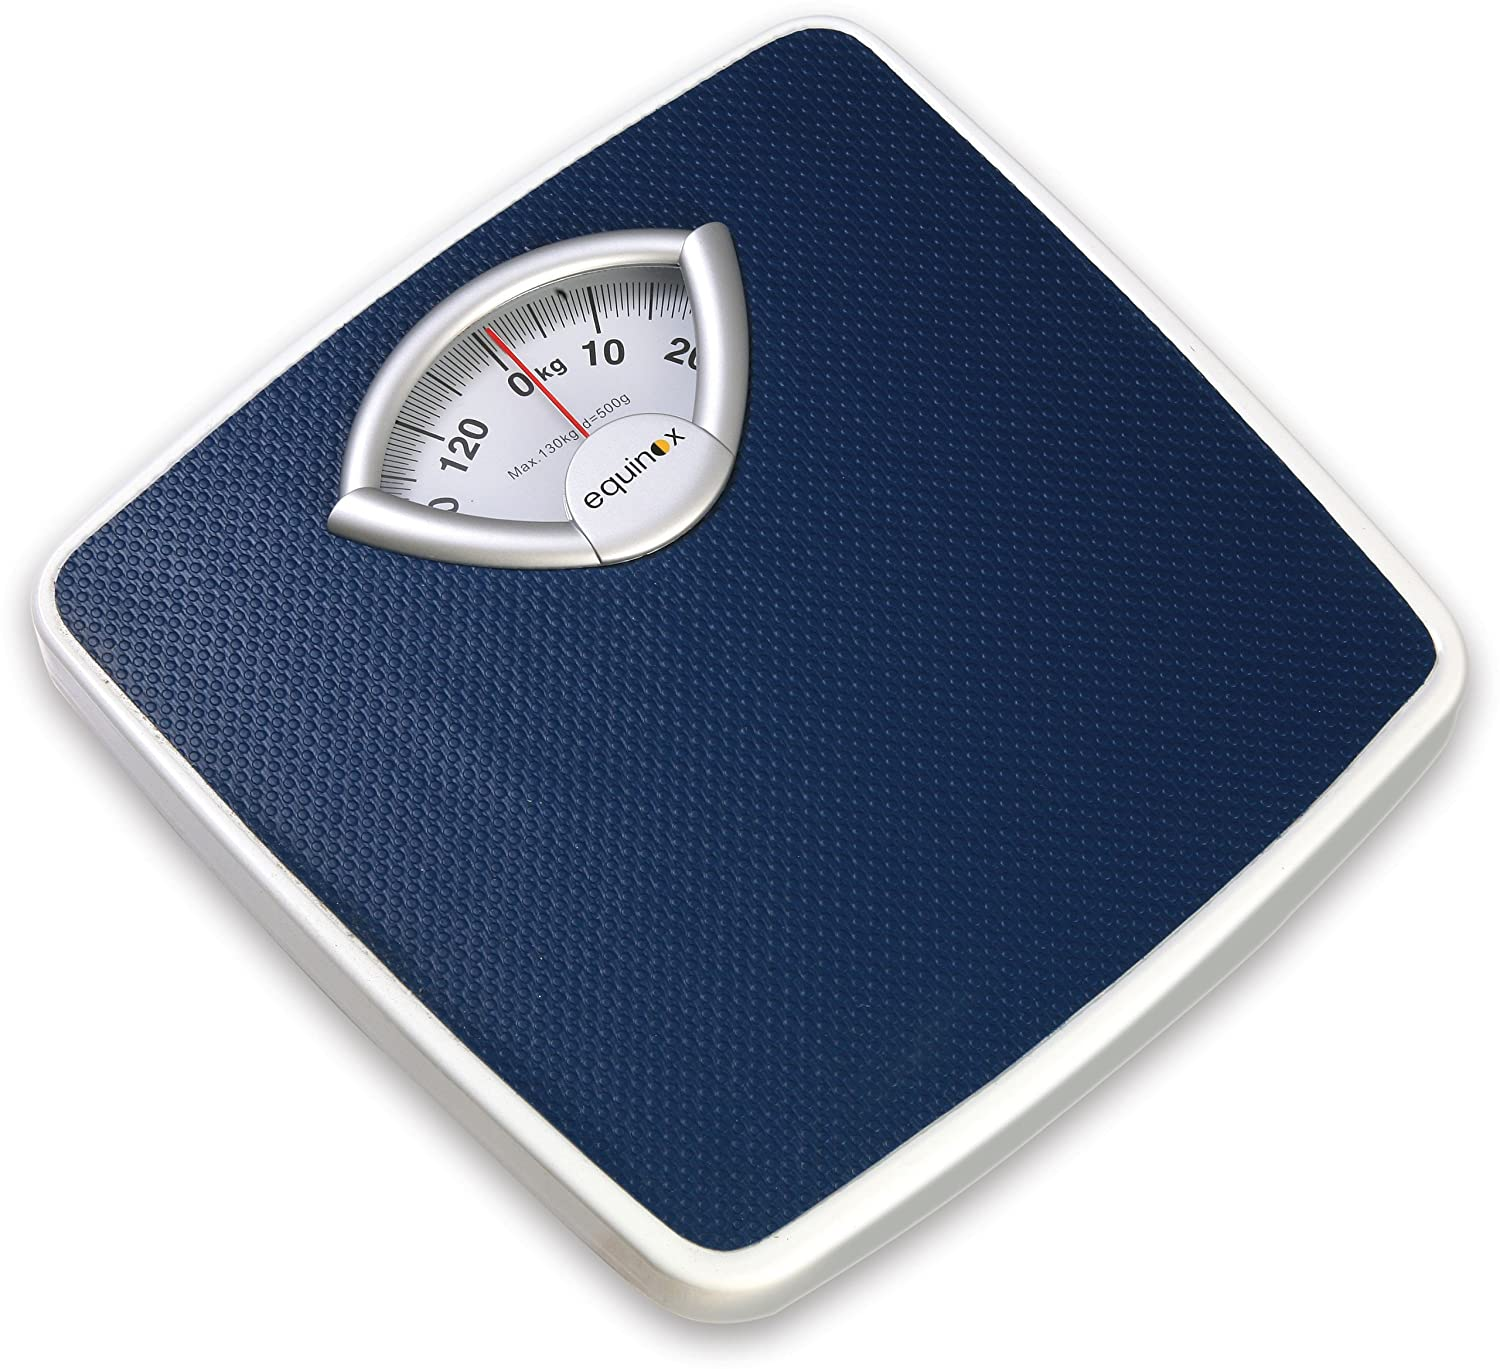 Image result for weighing machine equinox